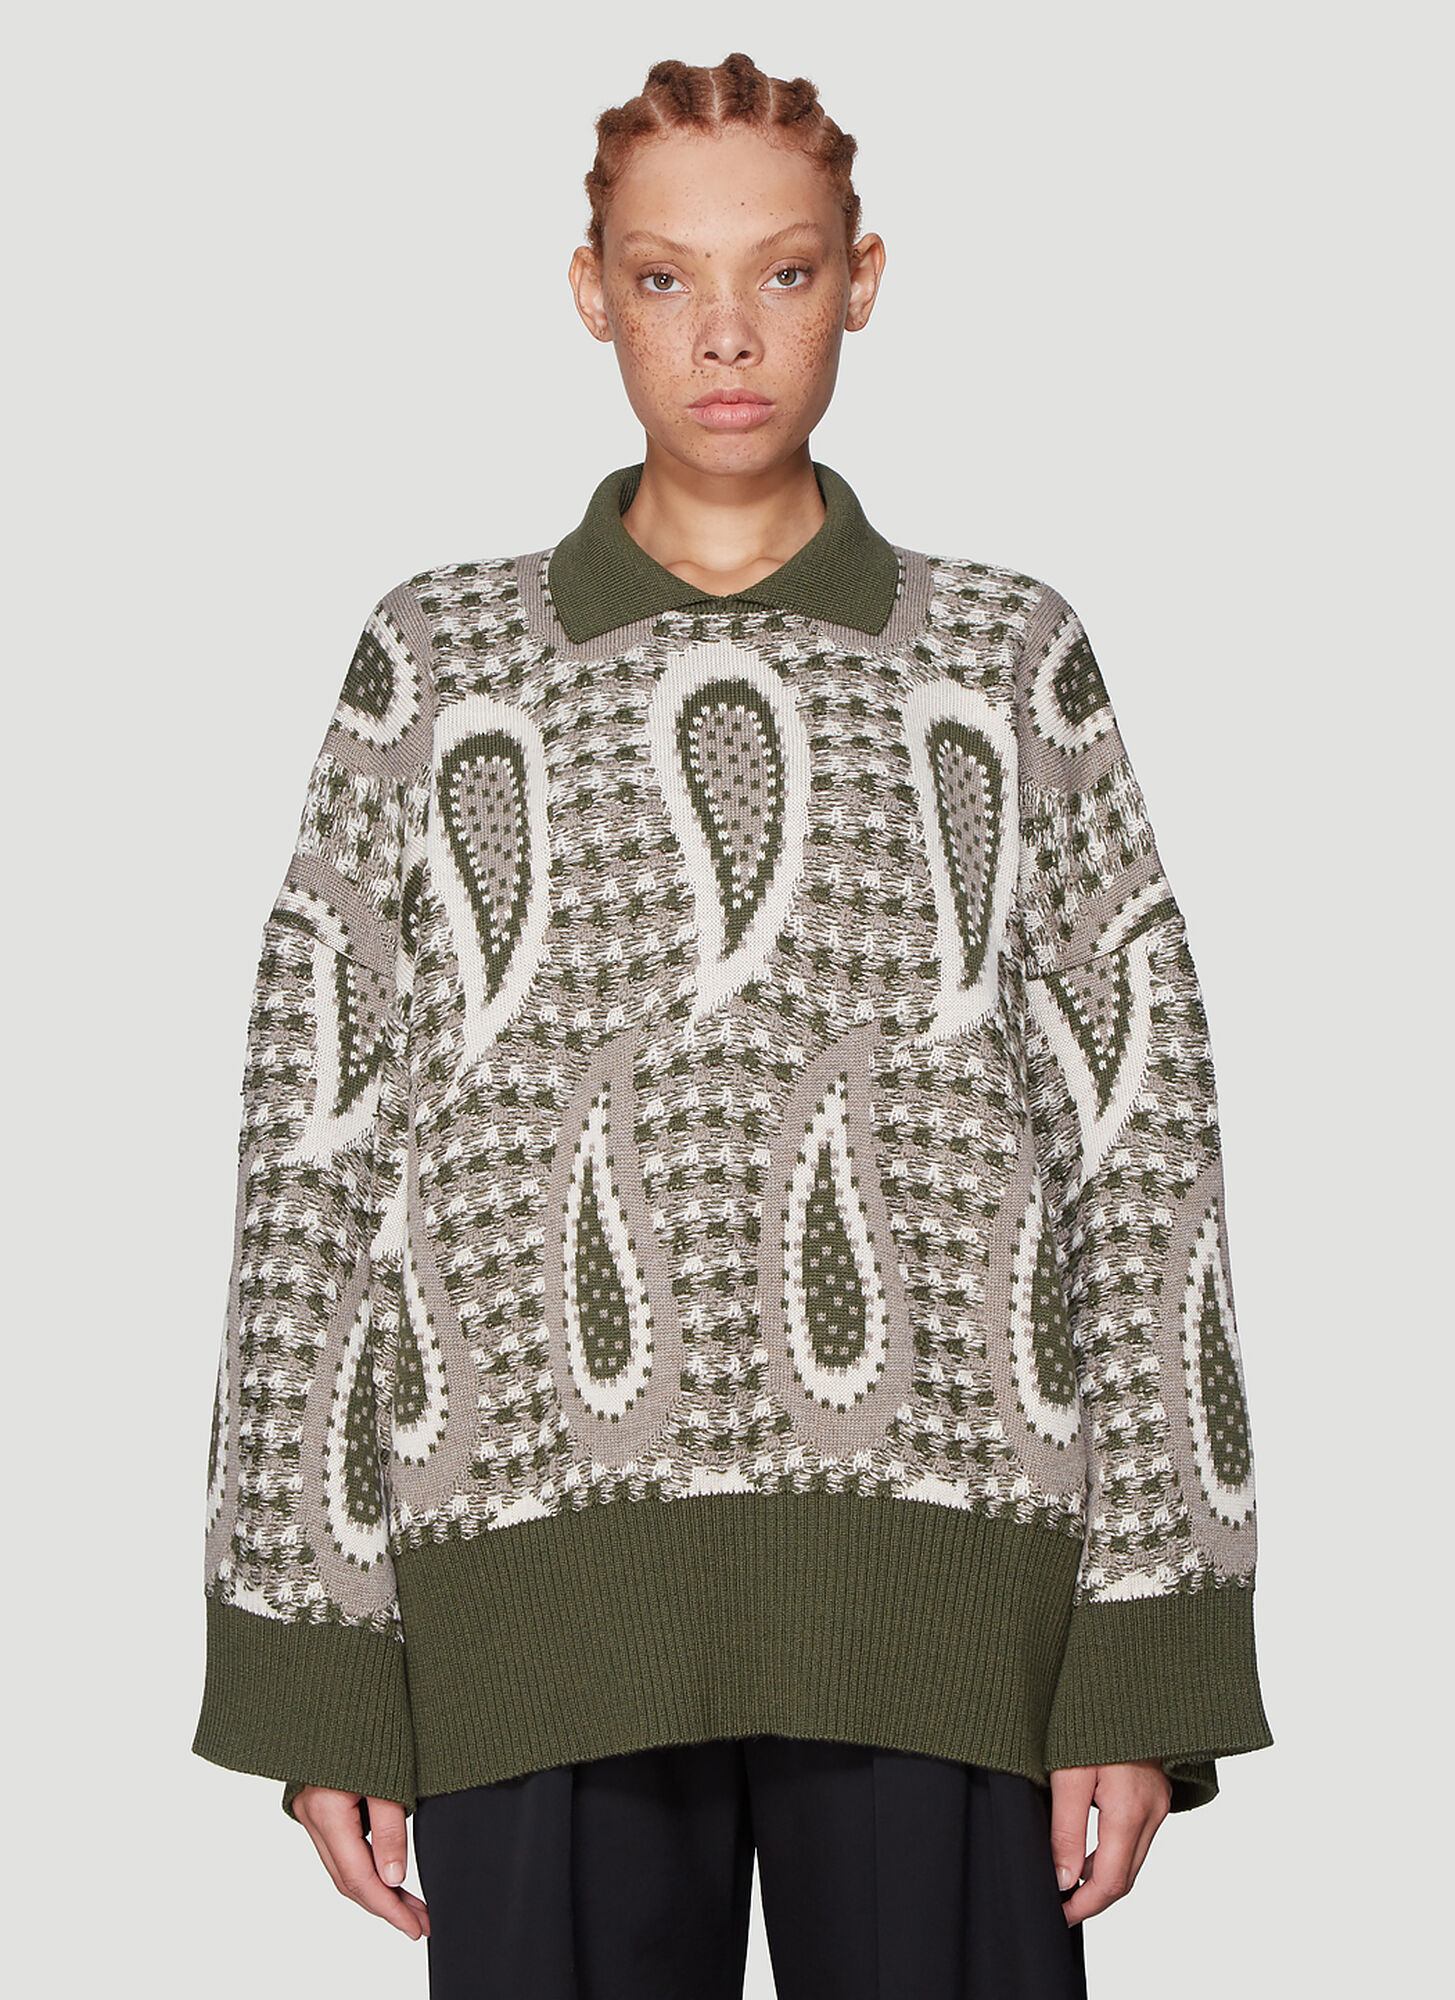 JW Anderson Paisley Knitted Sweater in Green